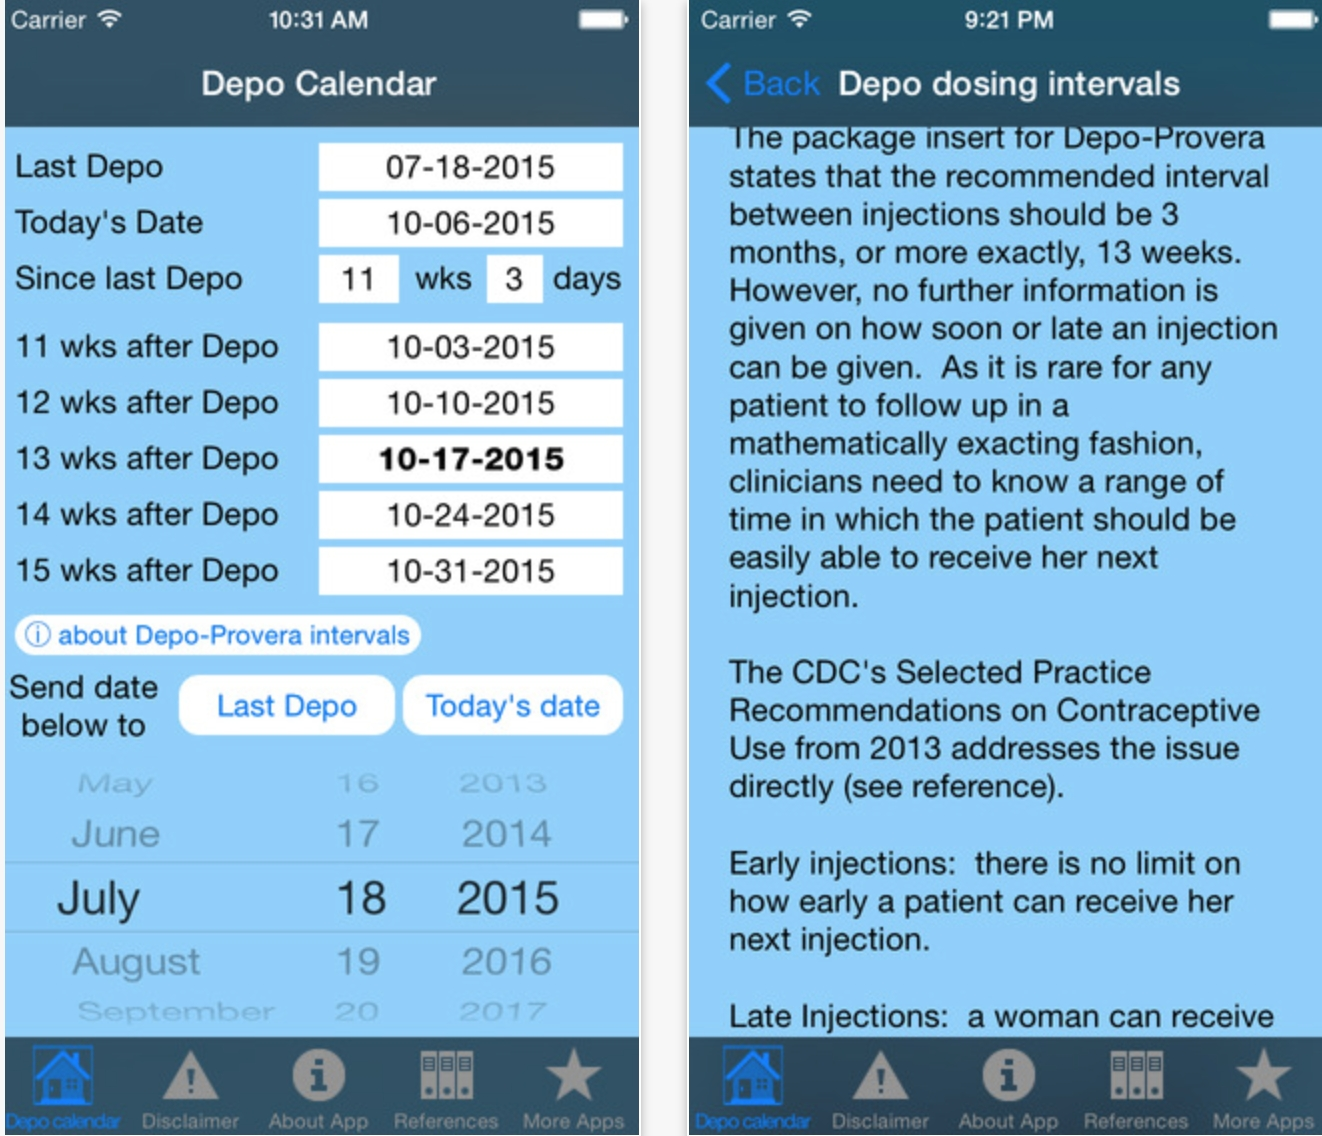 Depo Calendar App Could Significantly Improve Contraception